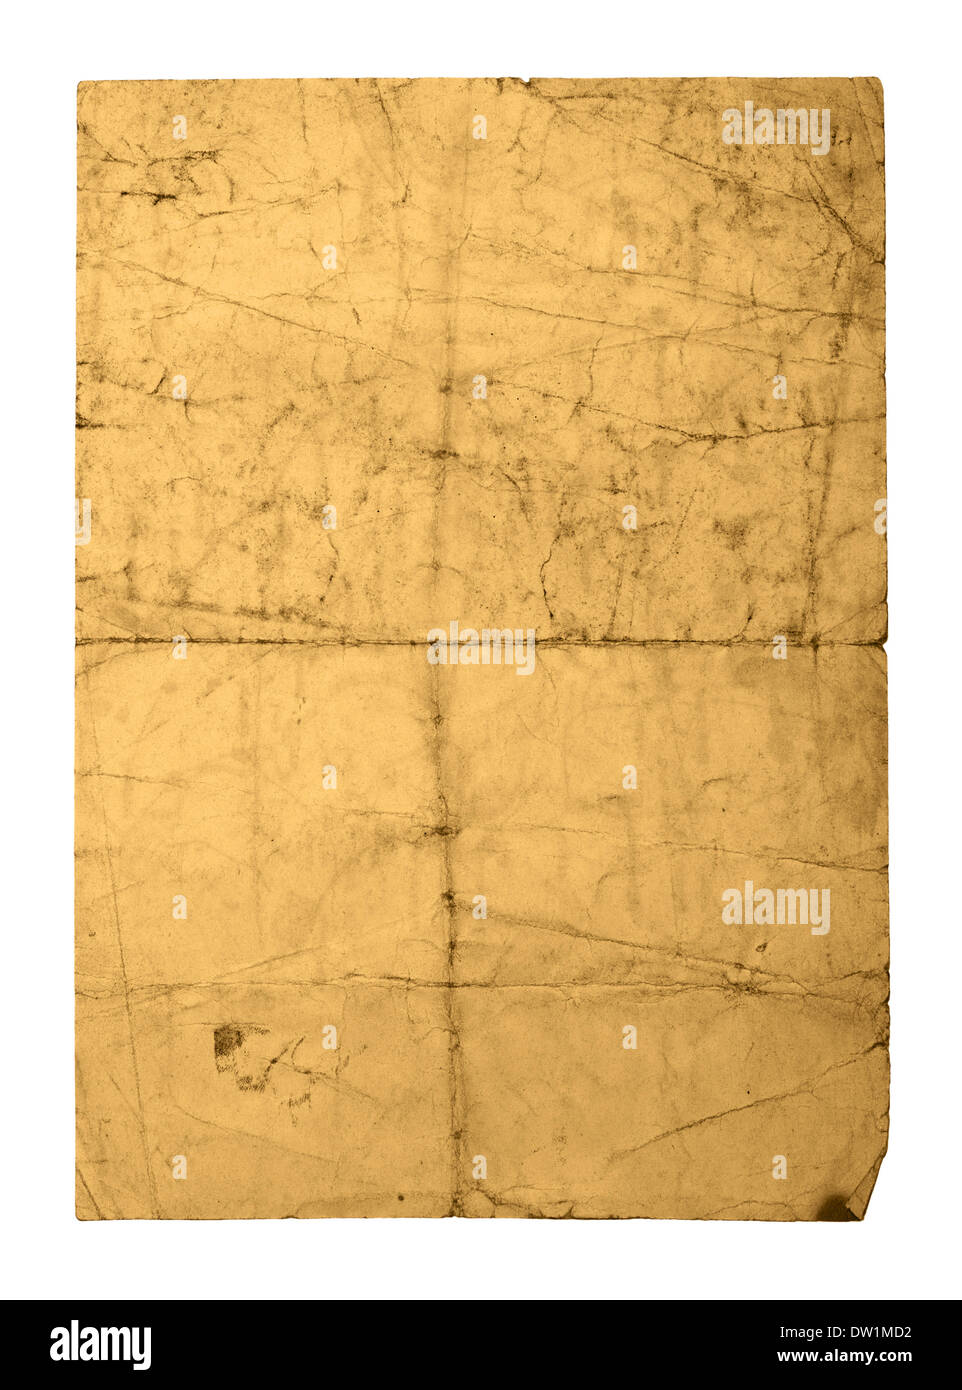 old crushed paper sheet - Stock Image